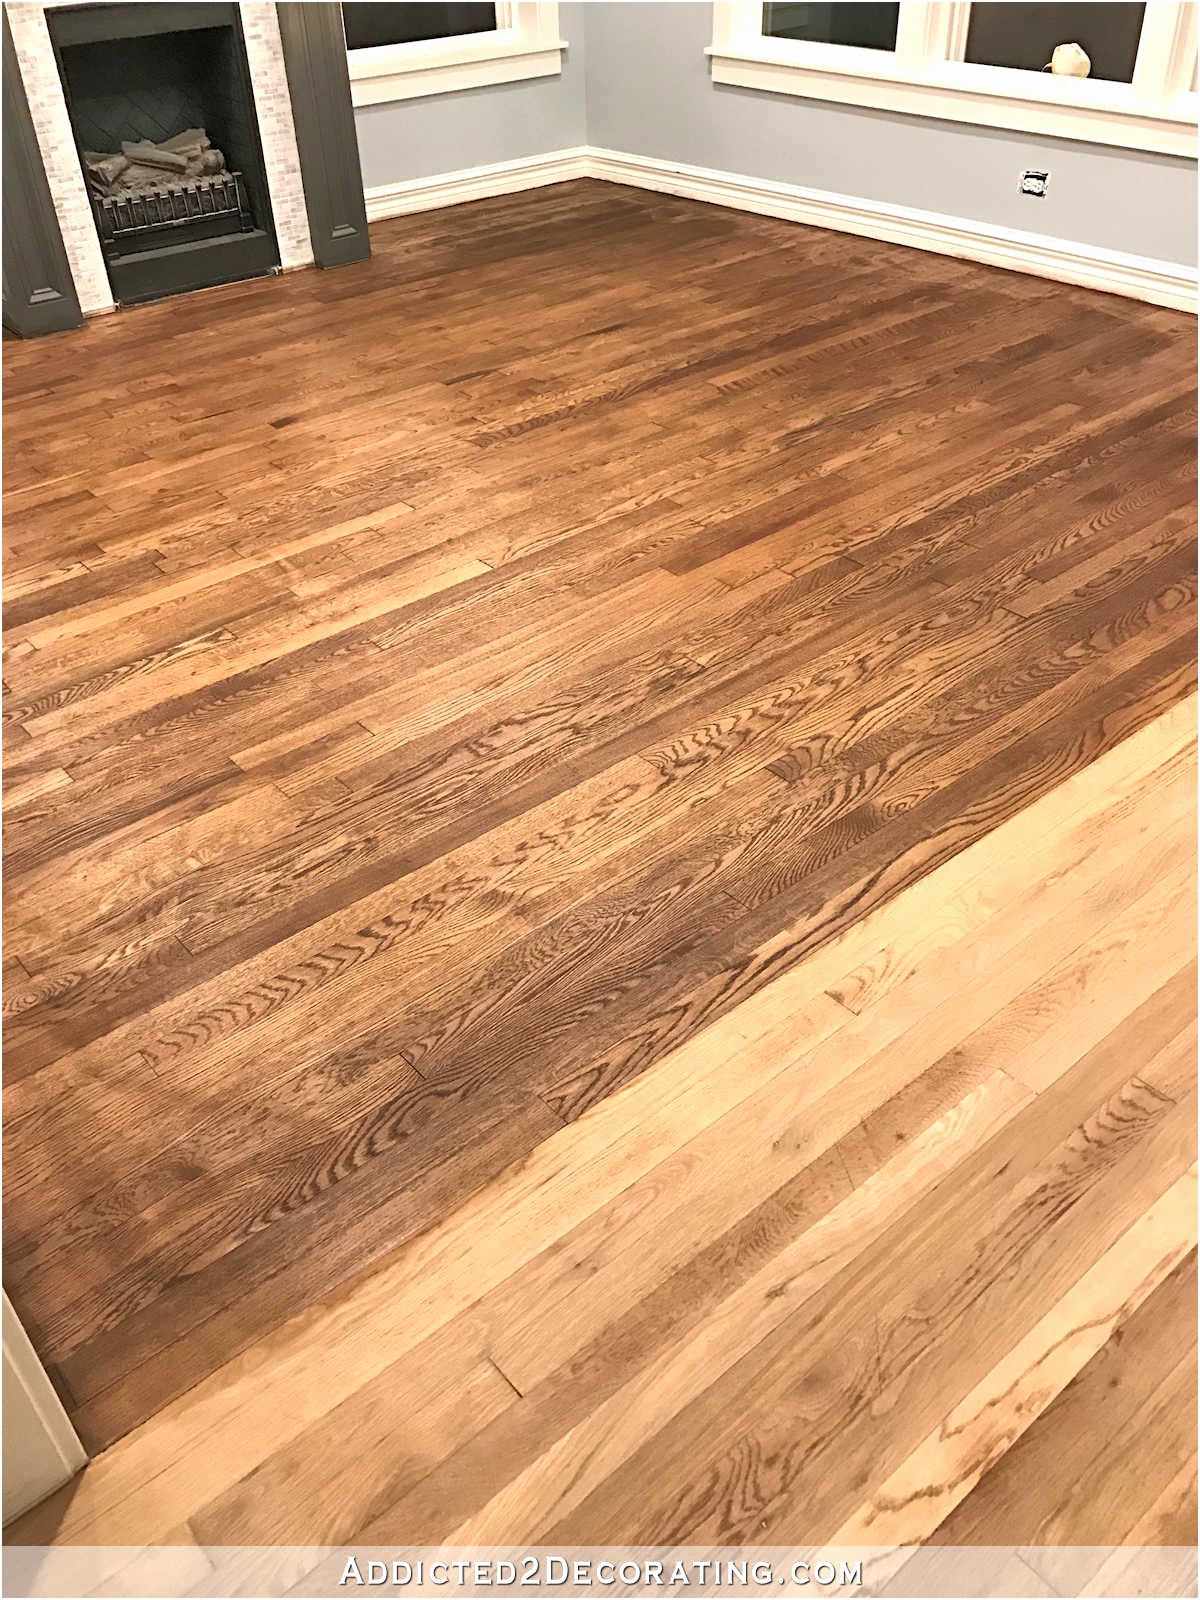 Hardwood Floor Installation Delaware Of Fantastic Floors Karndean Opus Flooring Installed by Us the Large for Fantastic Floors 50 Luxury Armstrong Hardwood Flooring Pics 50 S